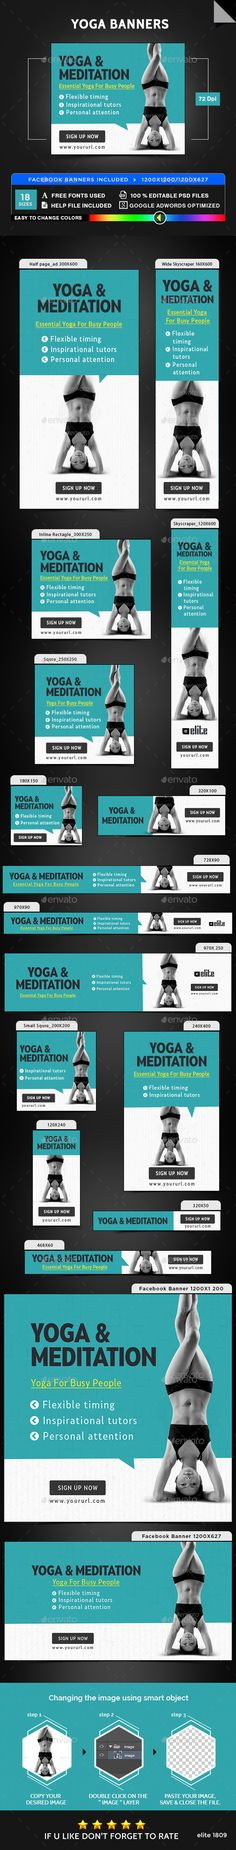 Yoga Banners Template PSD